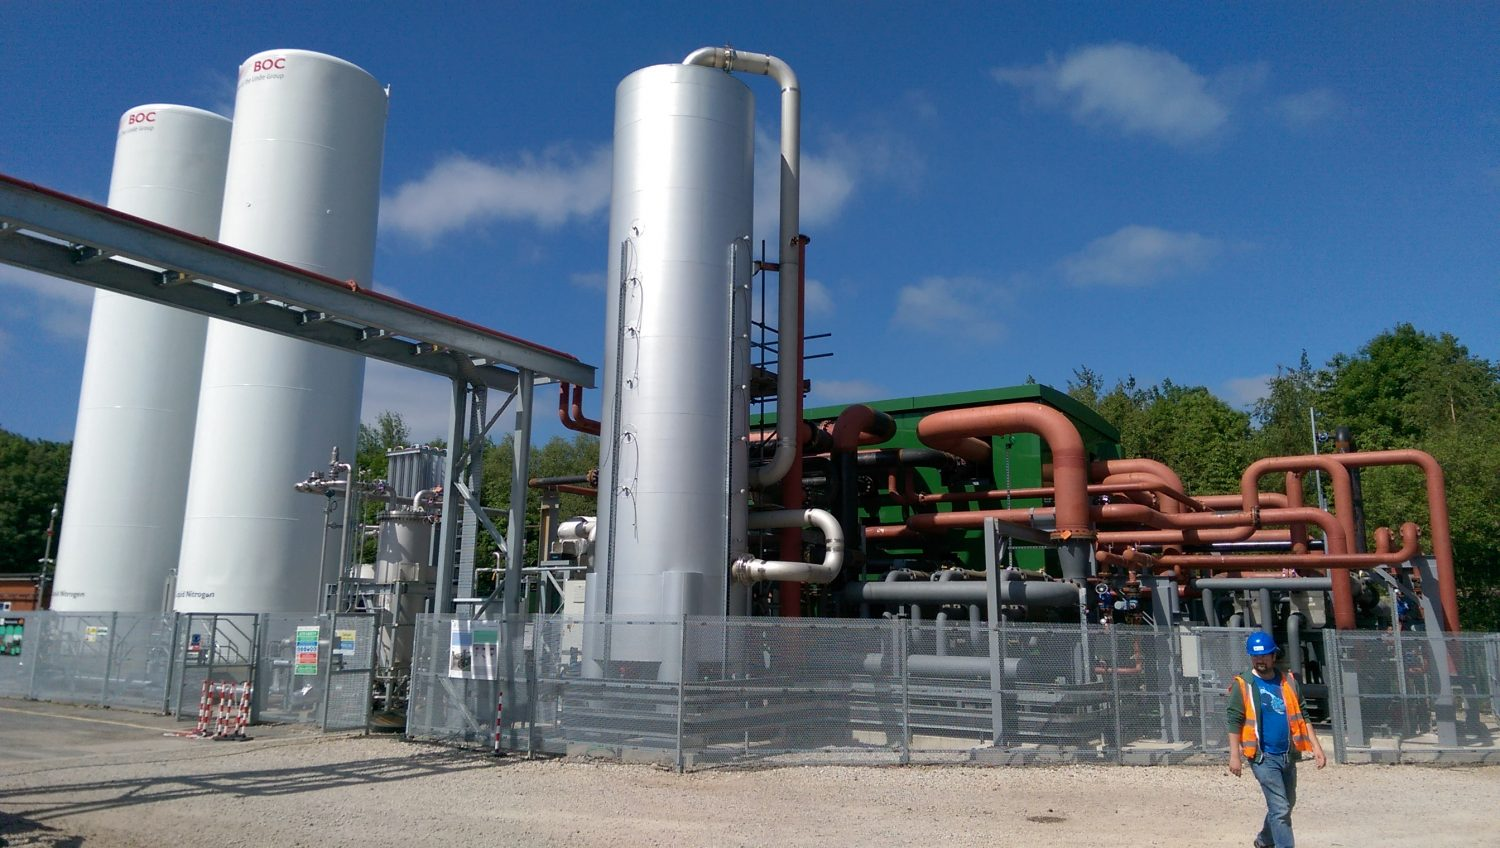 What is a Liquid Air Energy Storage System? - Smarter Business